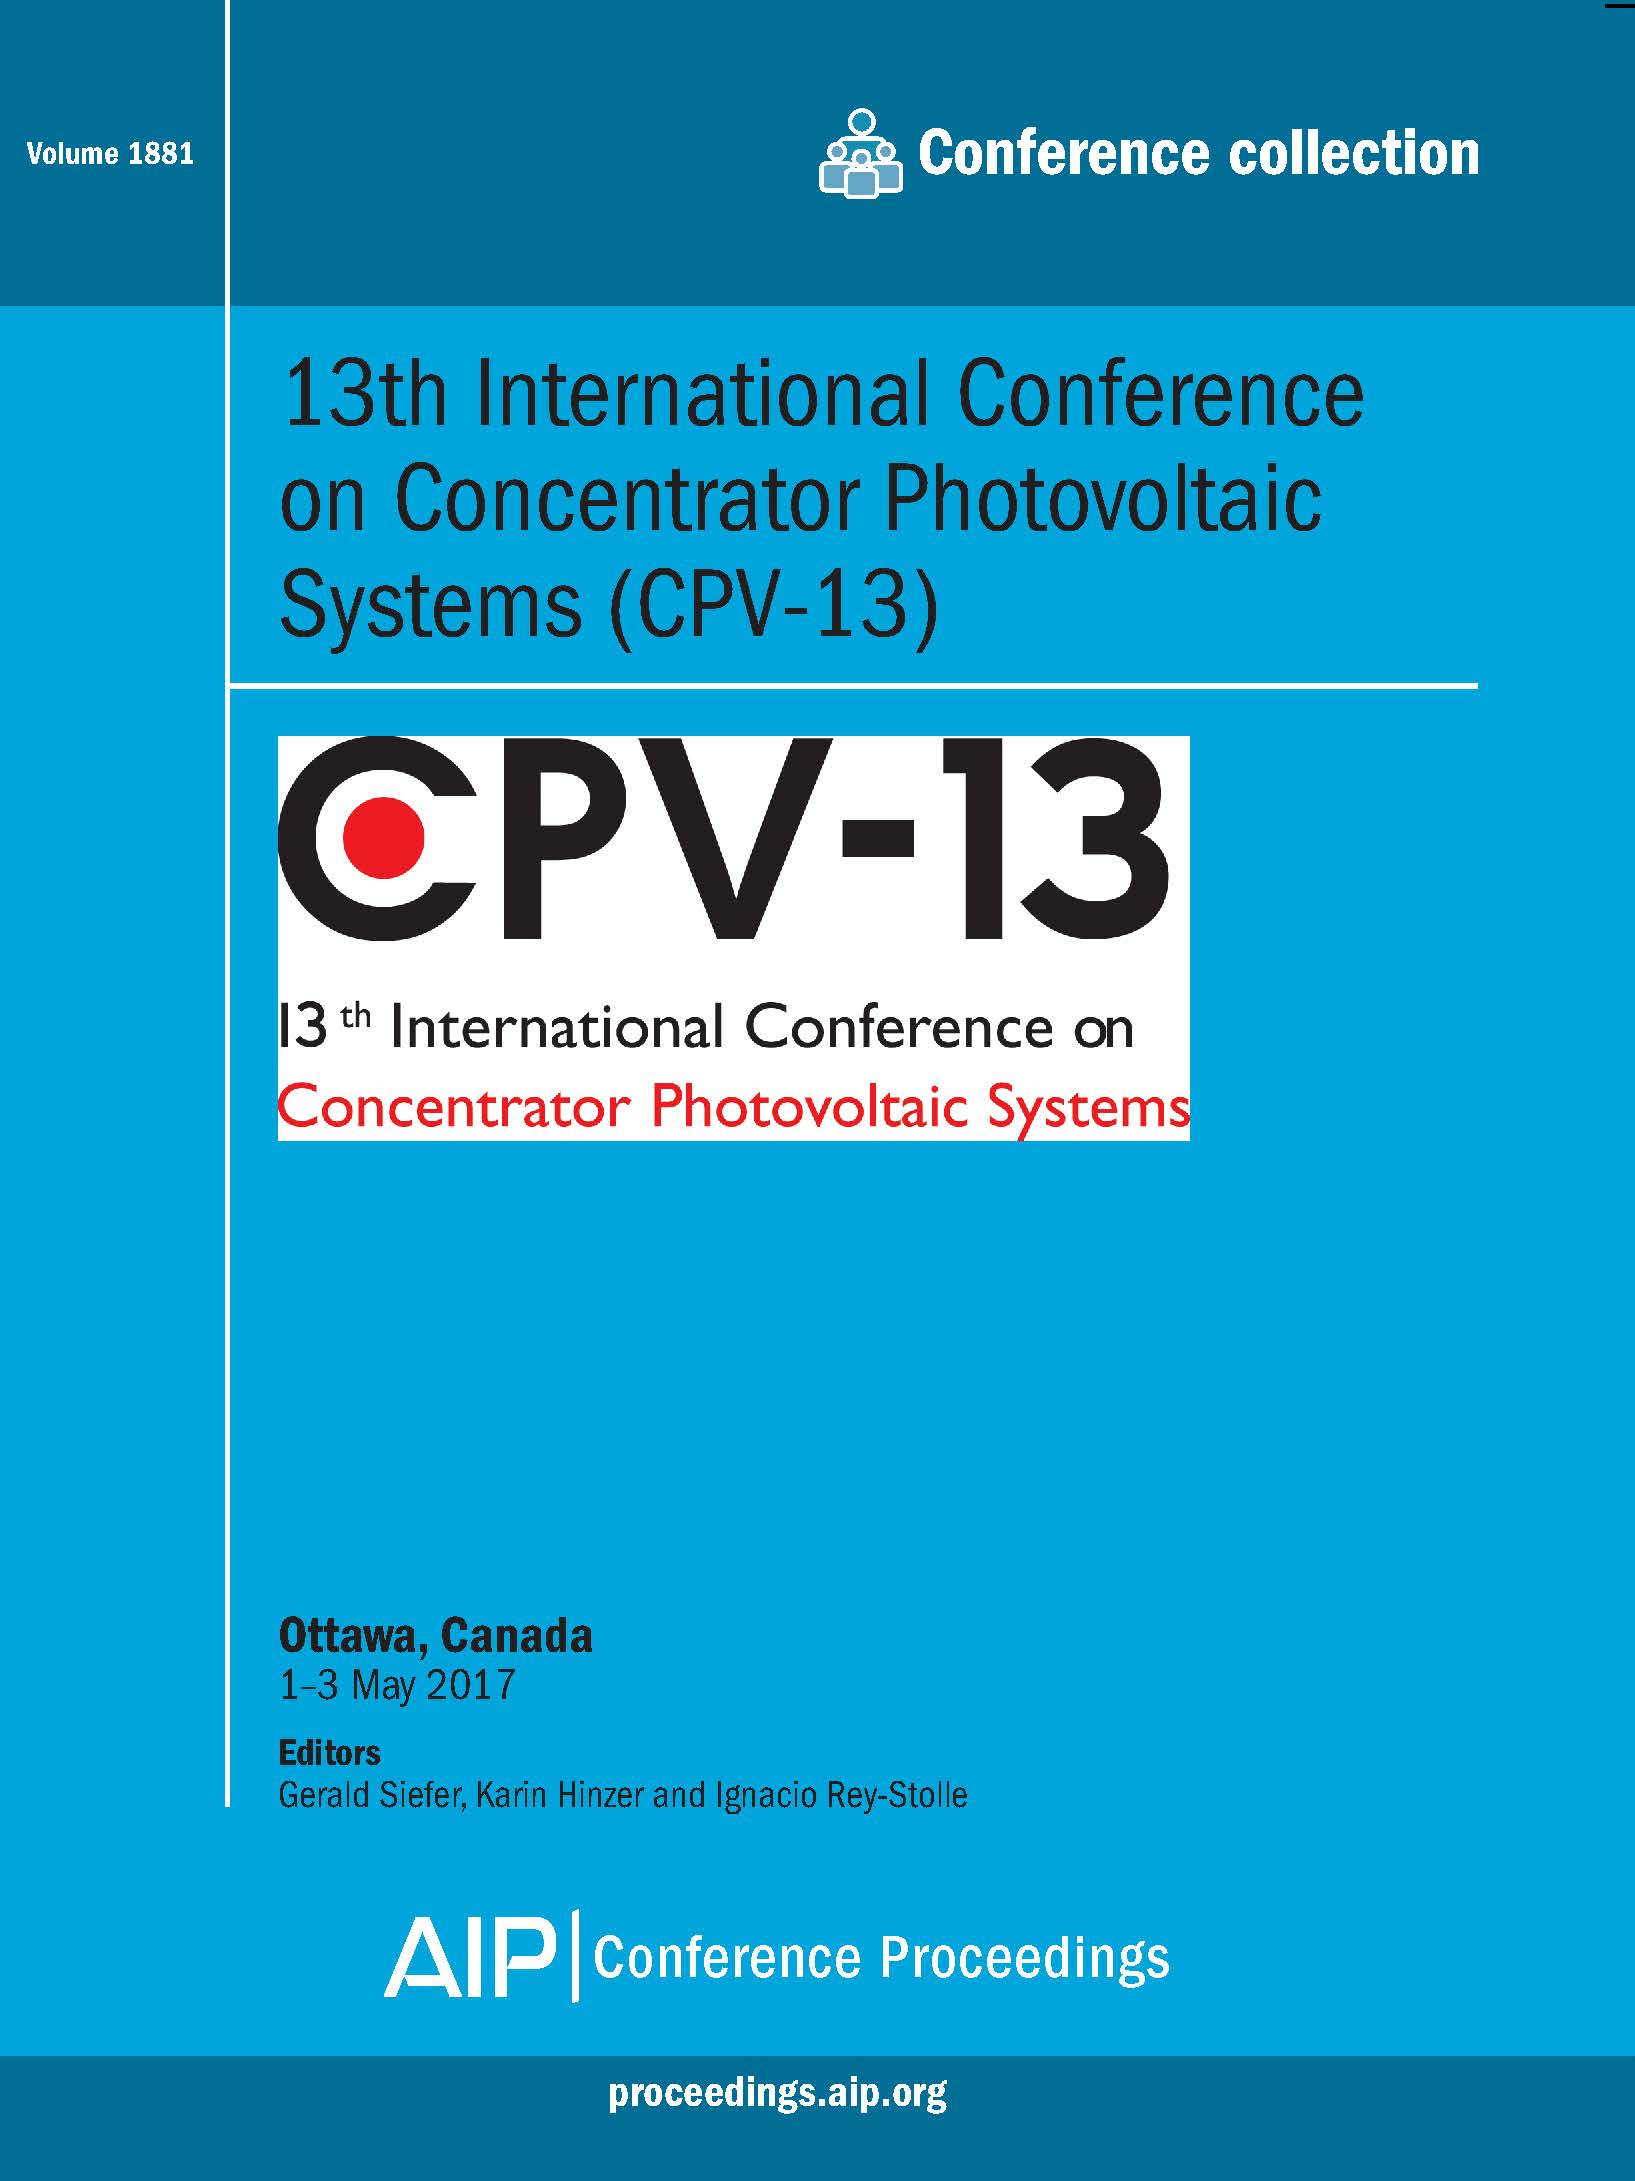 Volume 1881: 13th International Conference on Concentrator